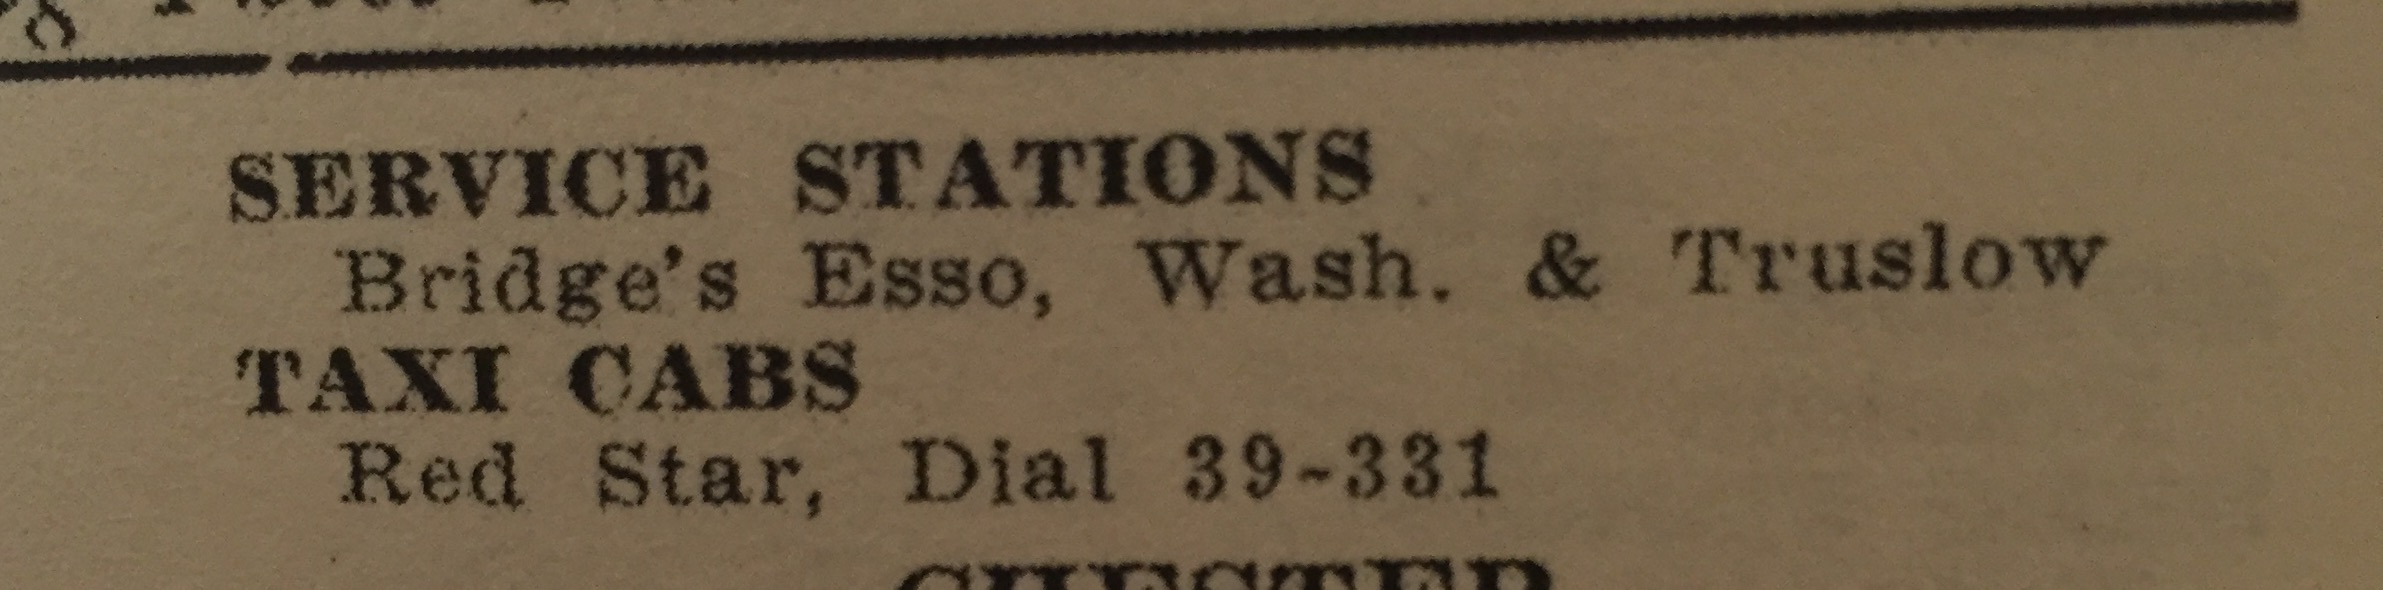 Other listings in the Charleston area (1954 Edition).